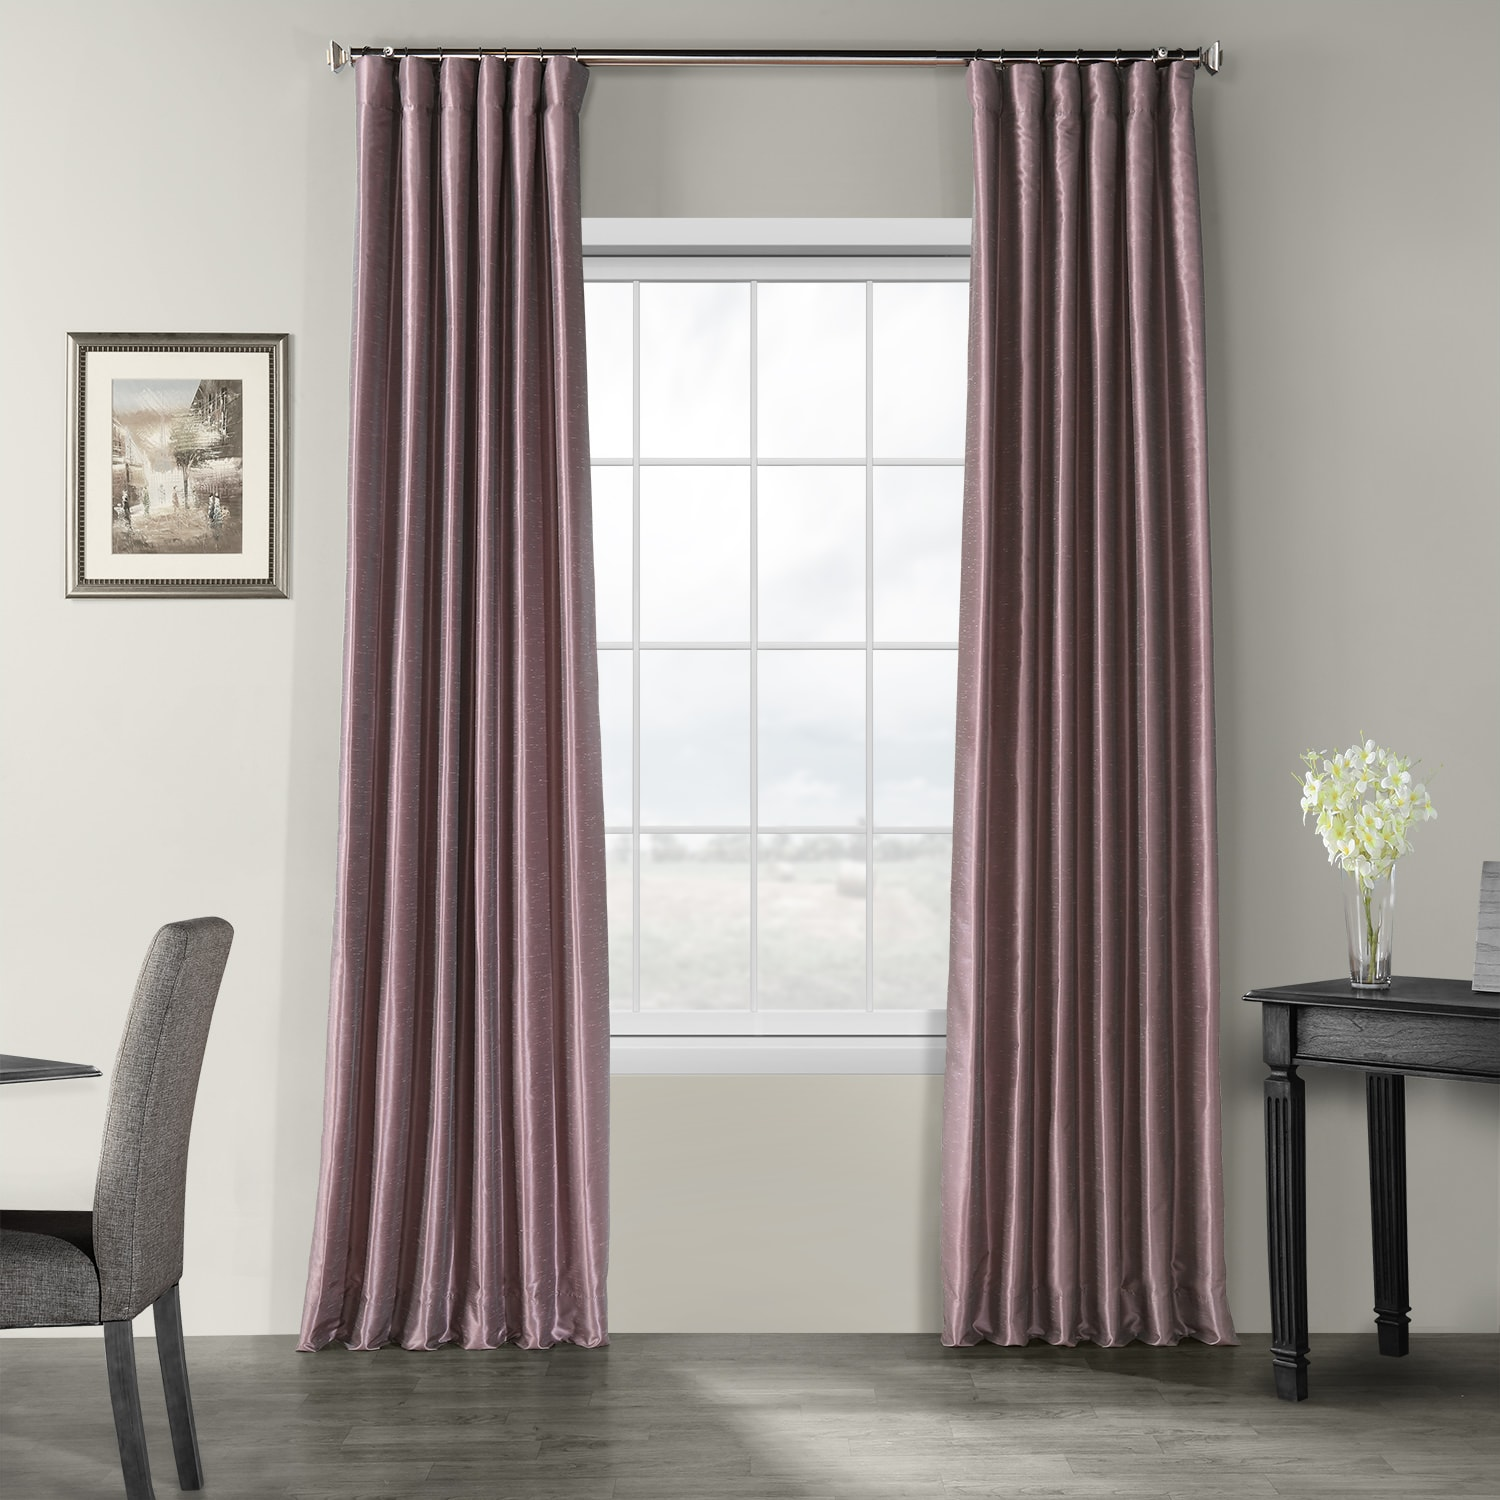 Smokey Plum Vintage Textured Faux Dupioni Silk Curtains